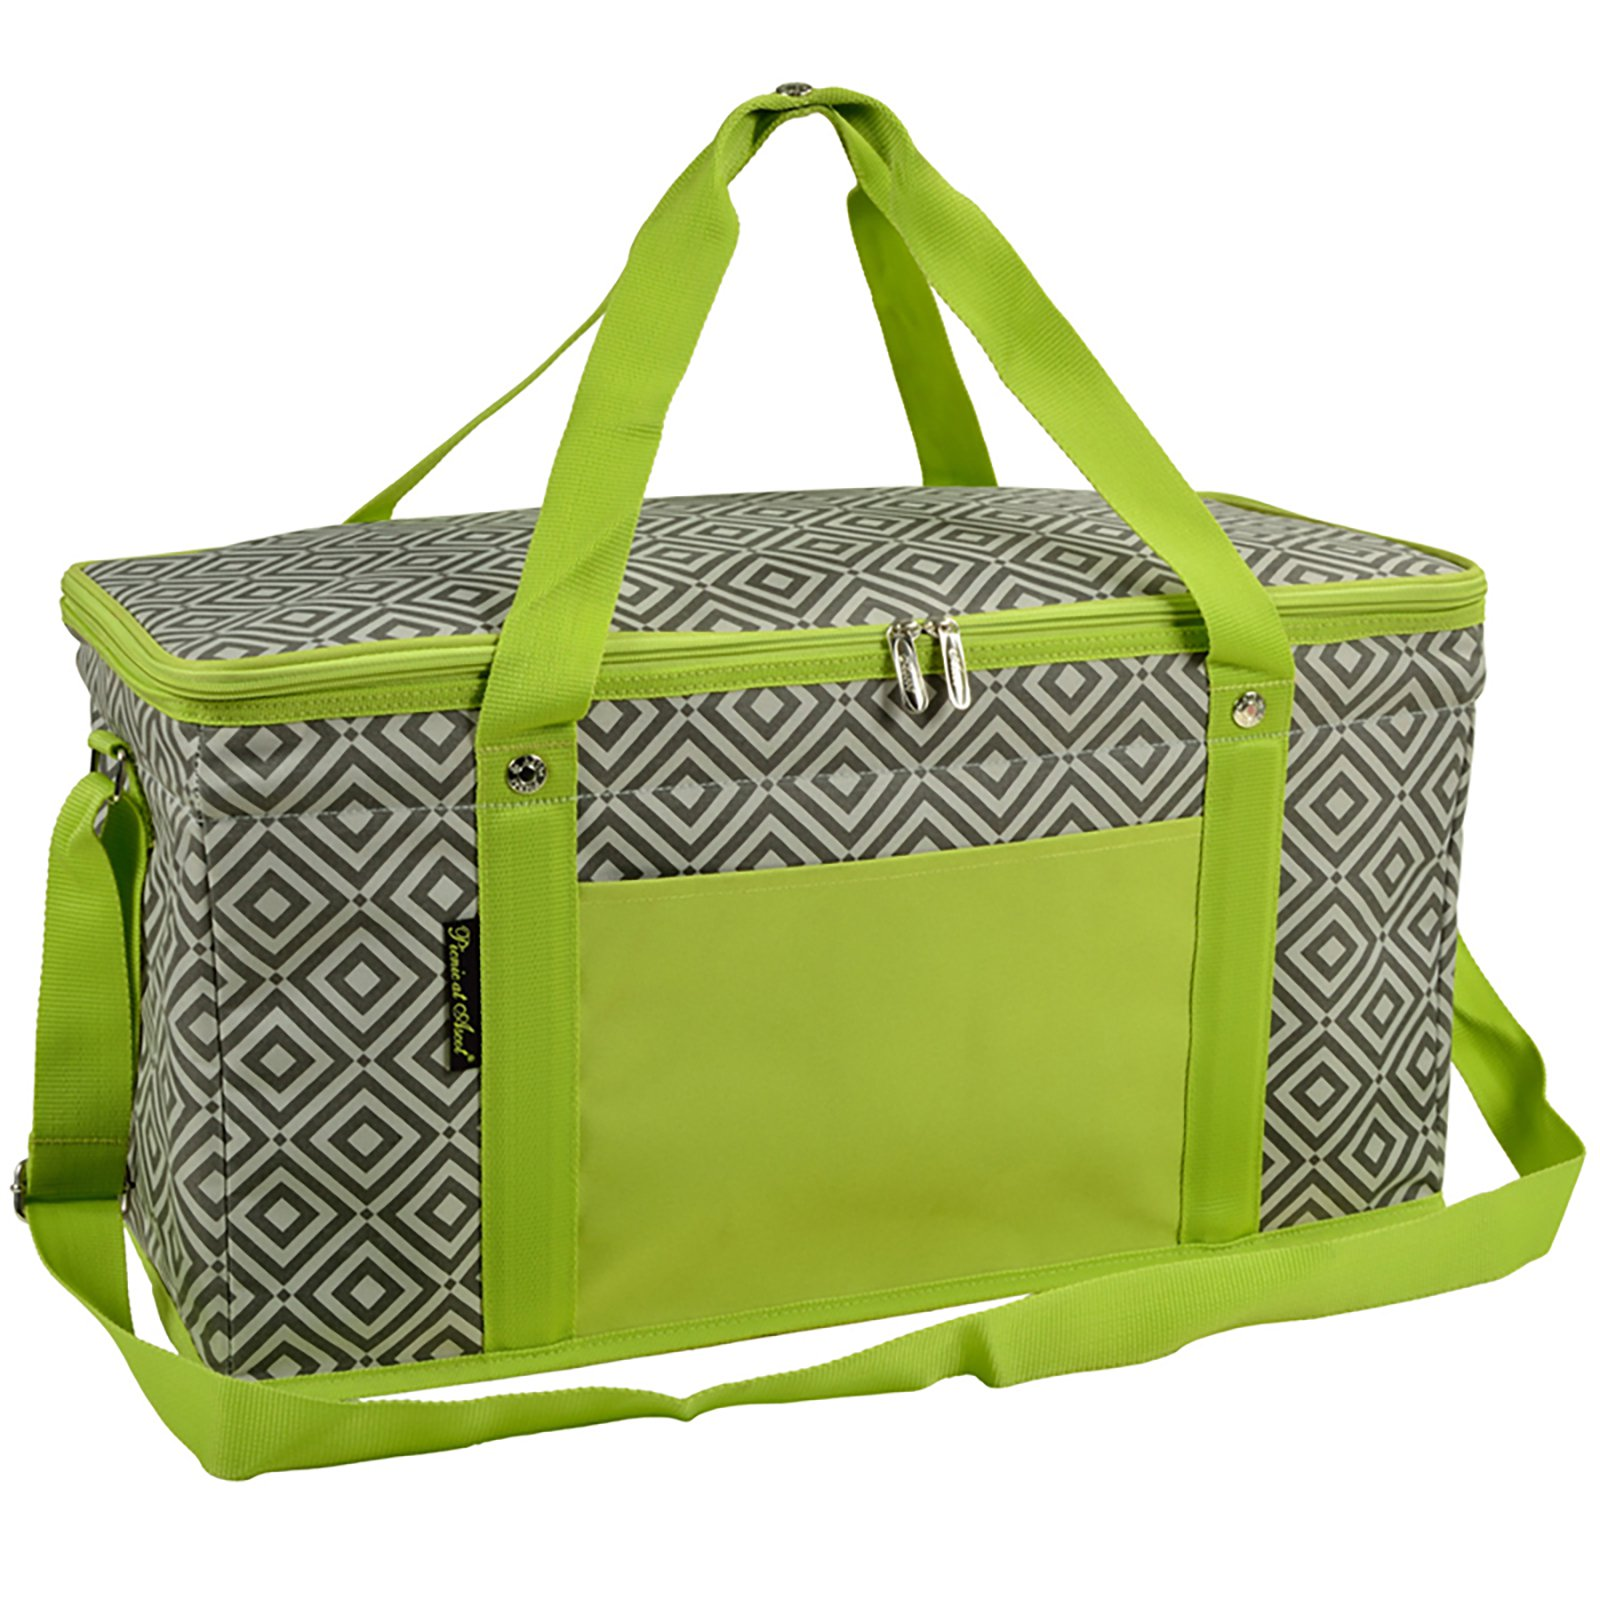 Picnic At Ascot Large Polycanvas Cooler